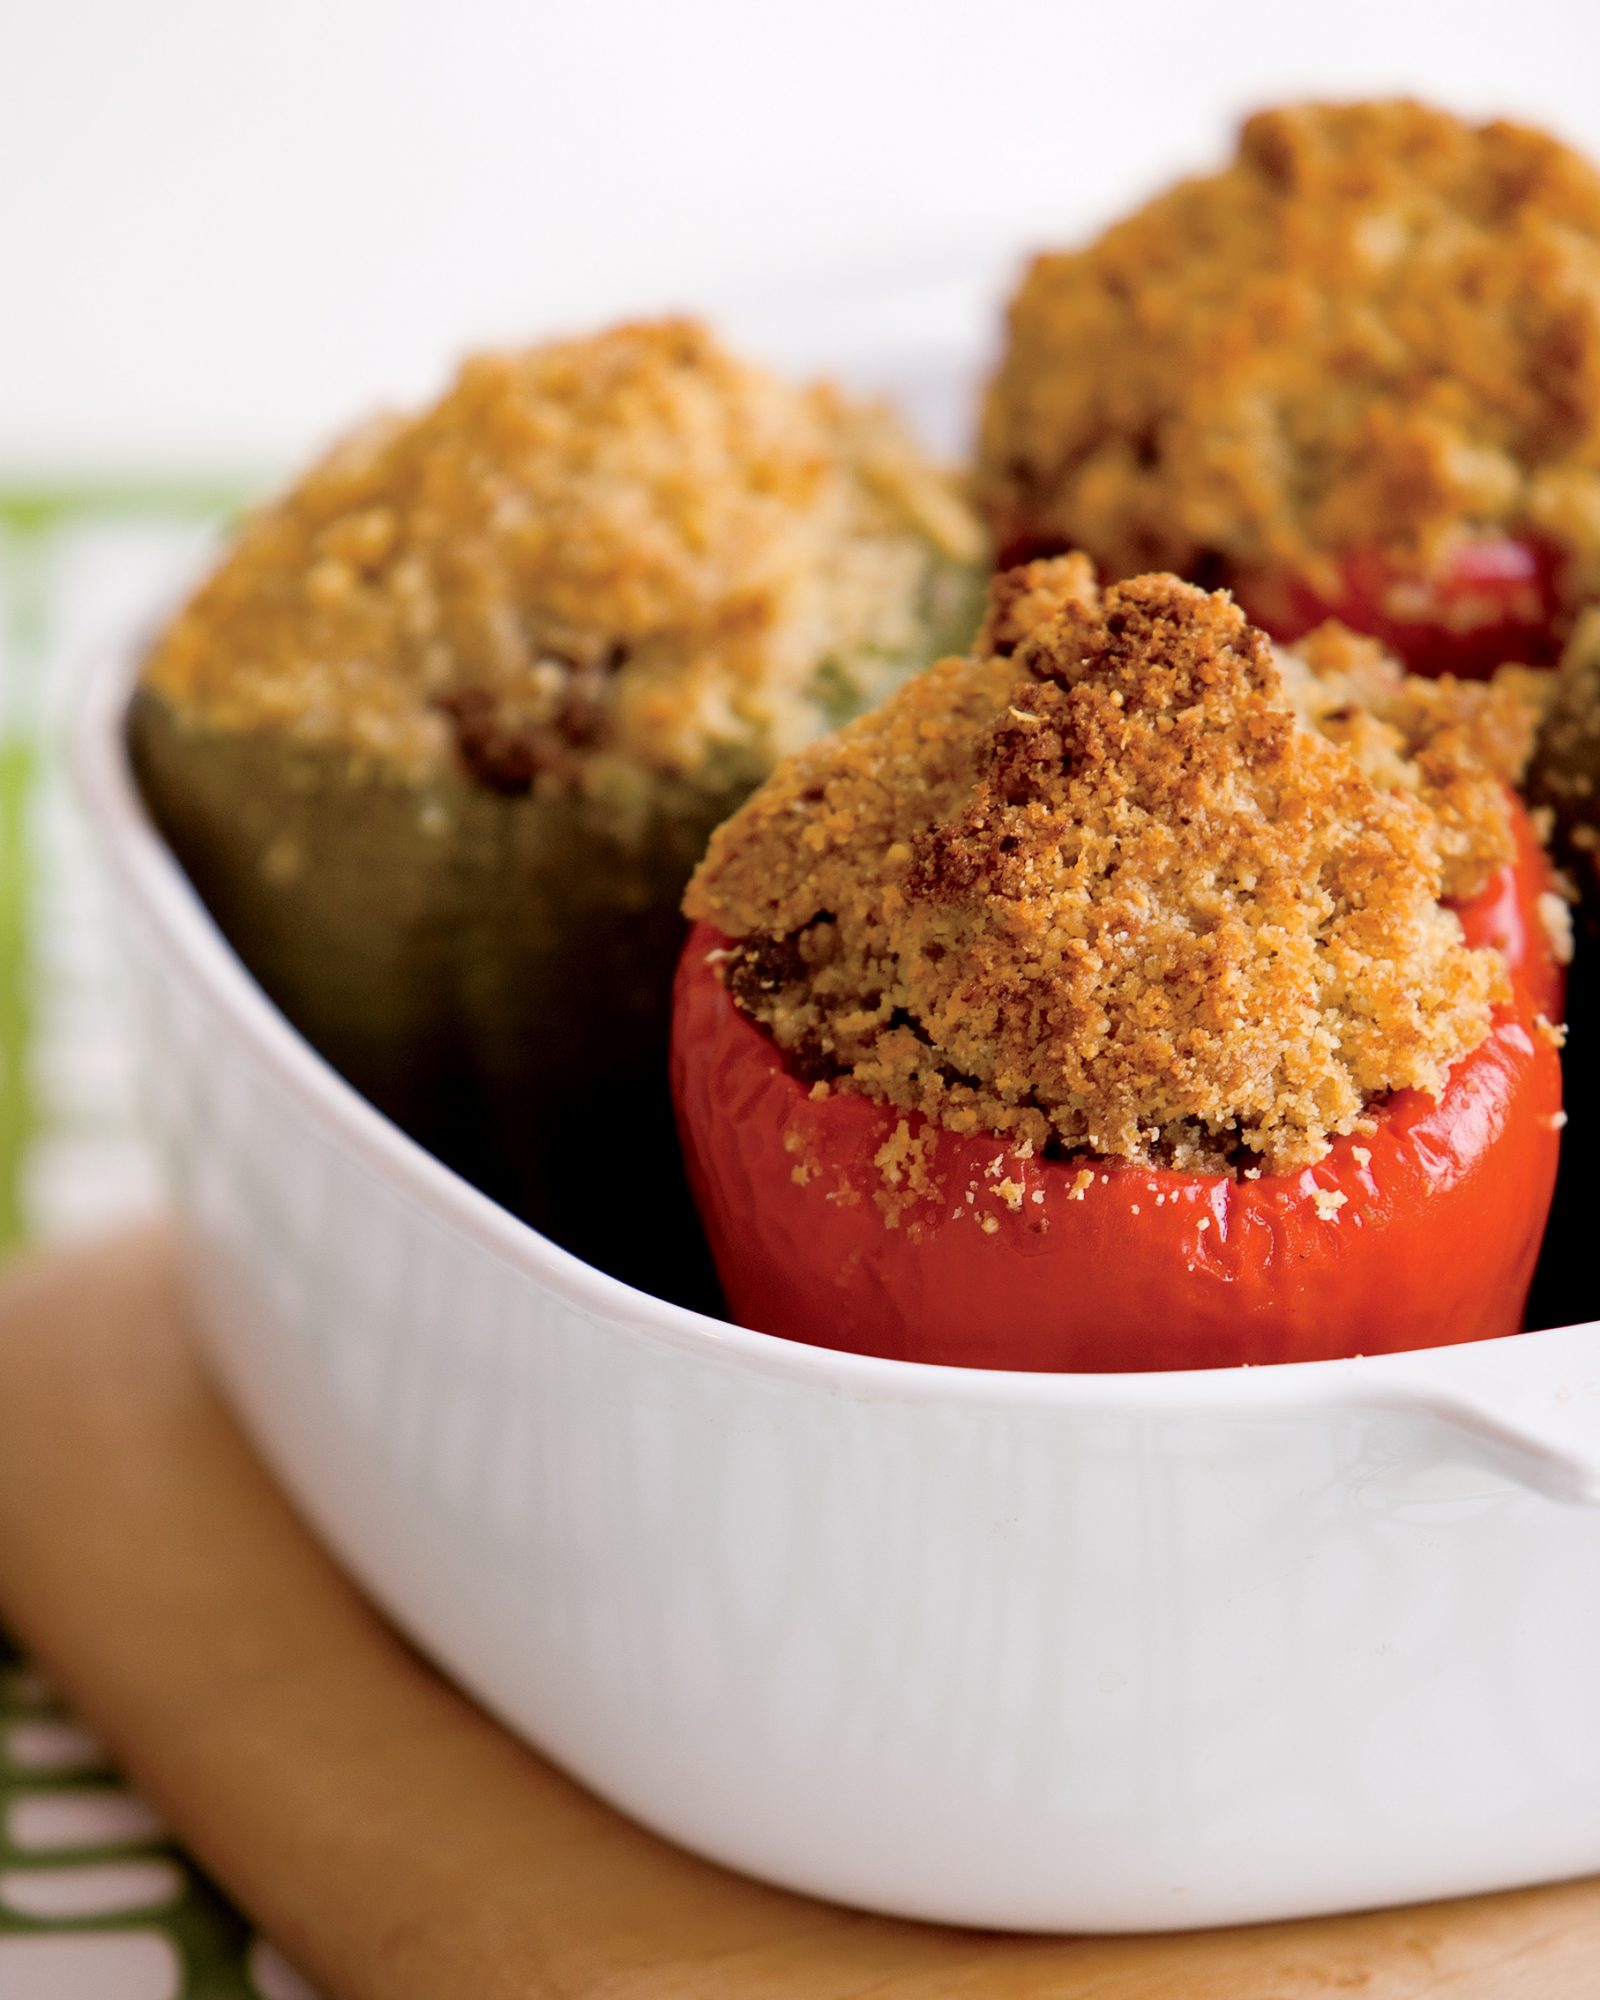 Beef-and-Mashed-Potato-Stuffed Peppers with Garlicky Bread Crumbs